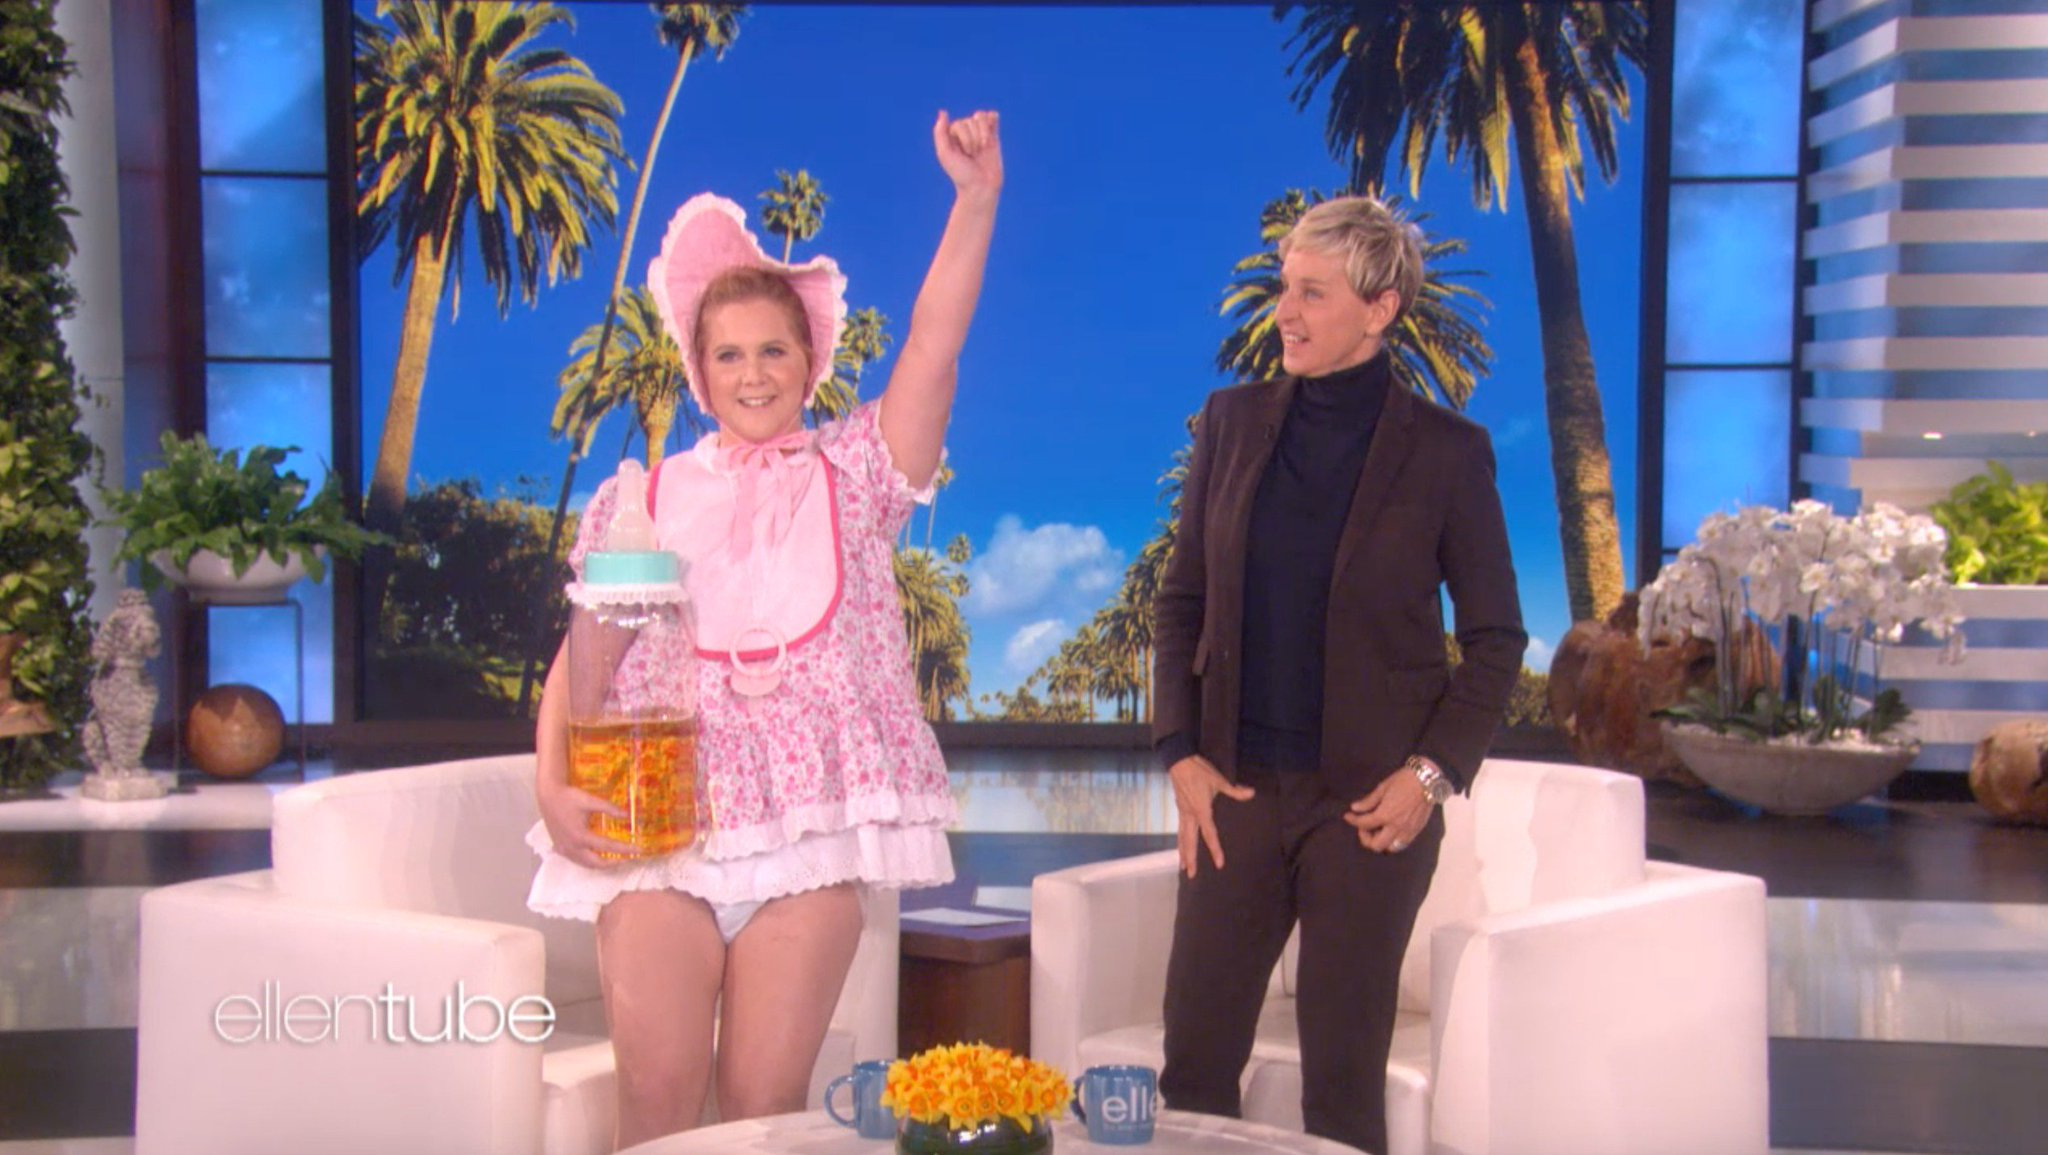 It's not every day you have to burp a guest. Thanks, @AmySchumer. https://t.co/cfzsAkPRg8